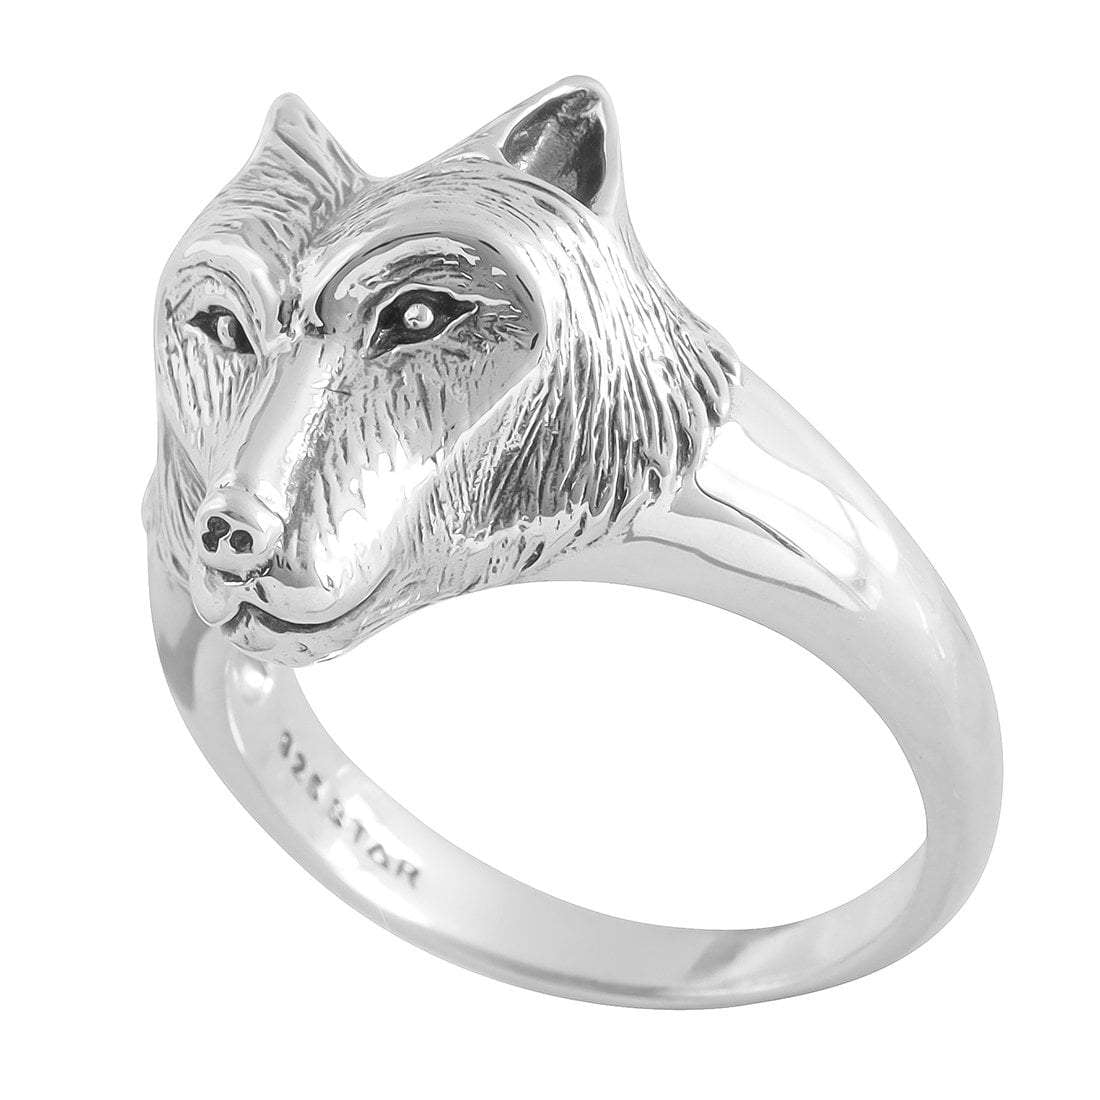 Midsummer Star Ring Running with Wolves Ring